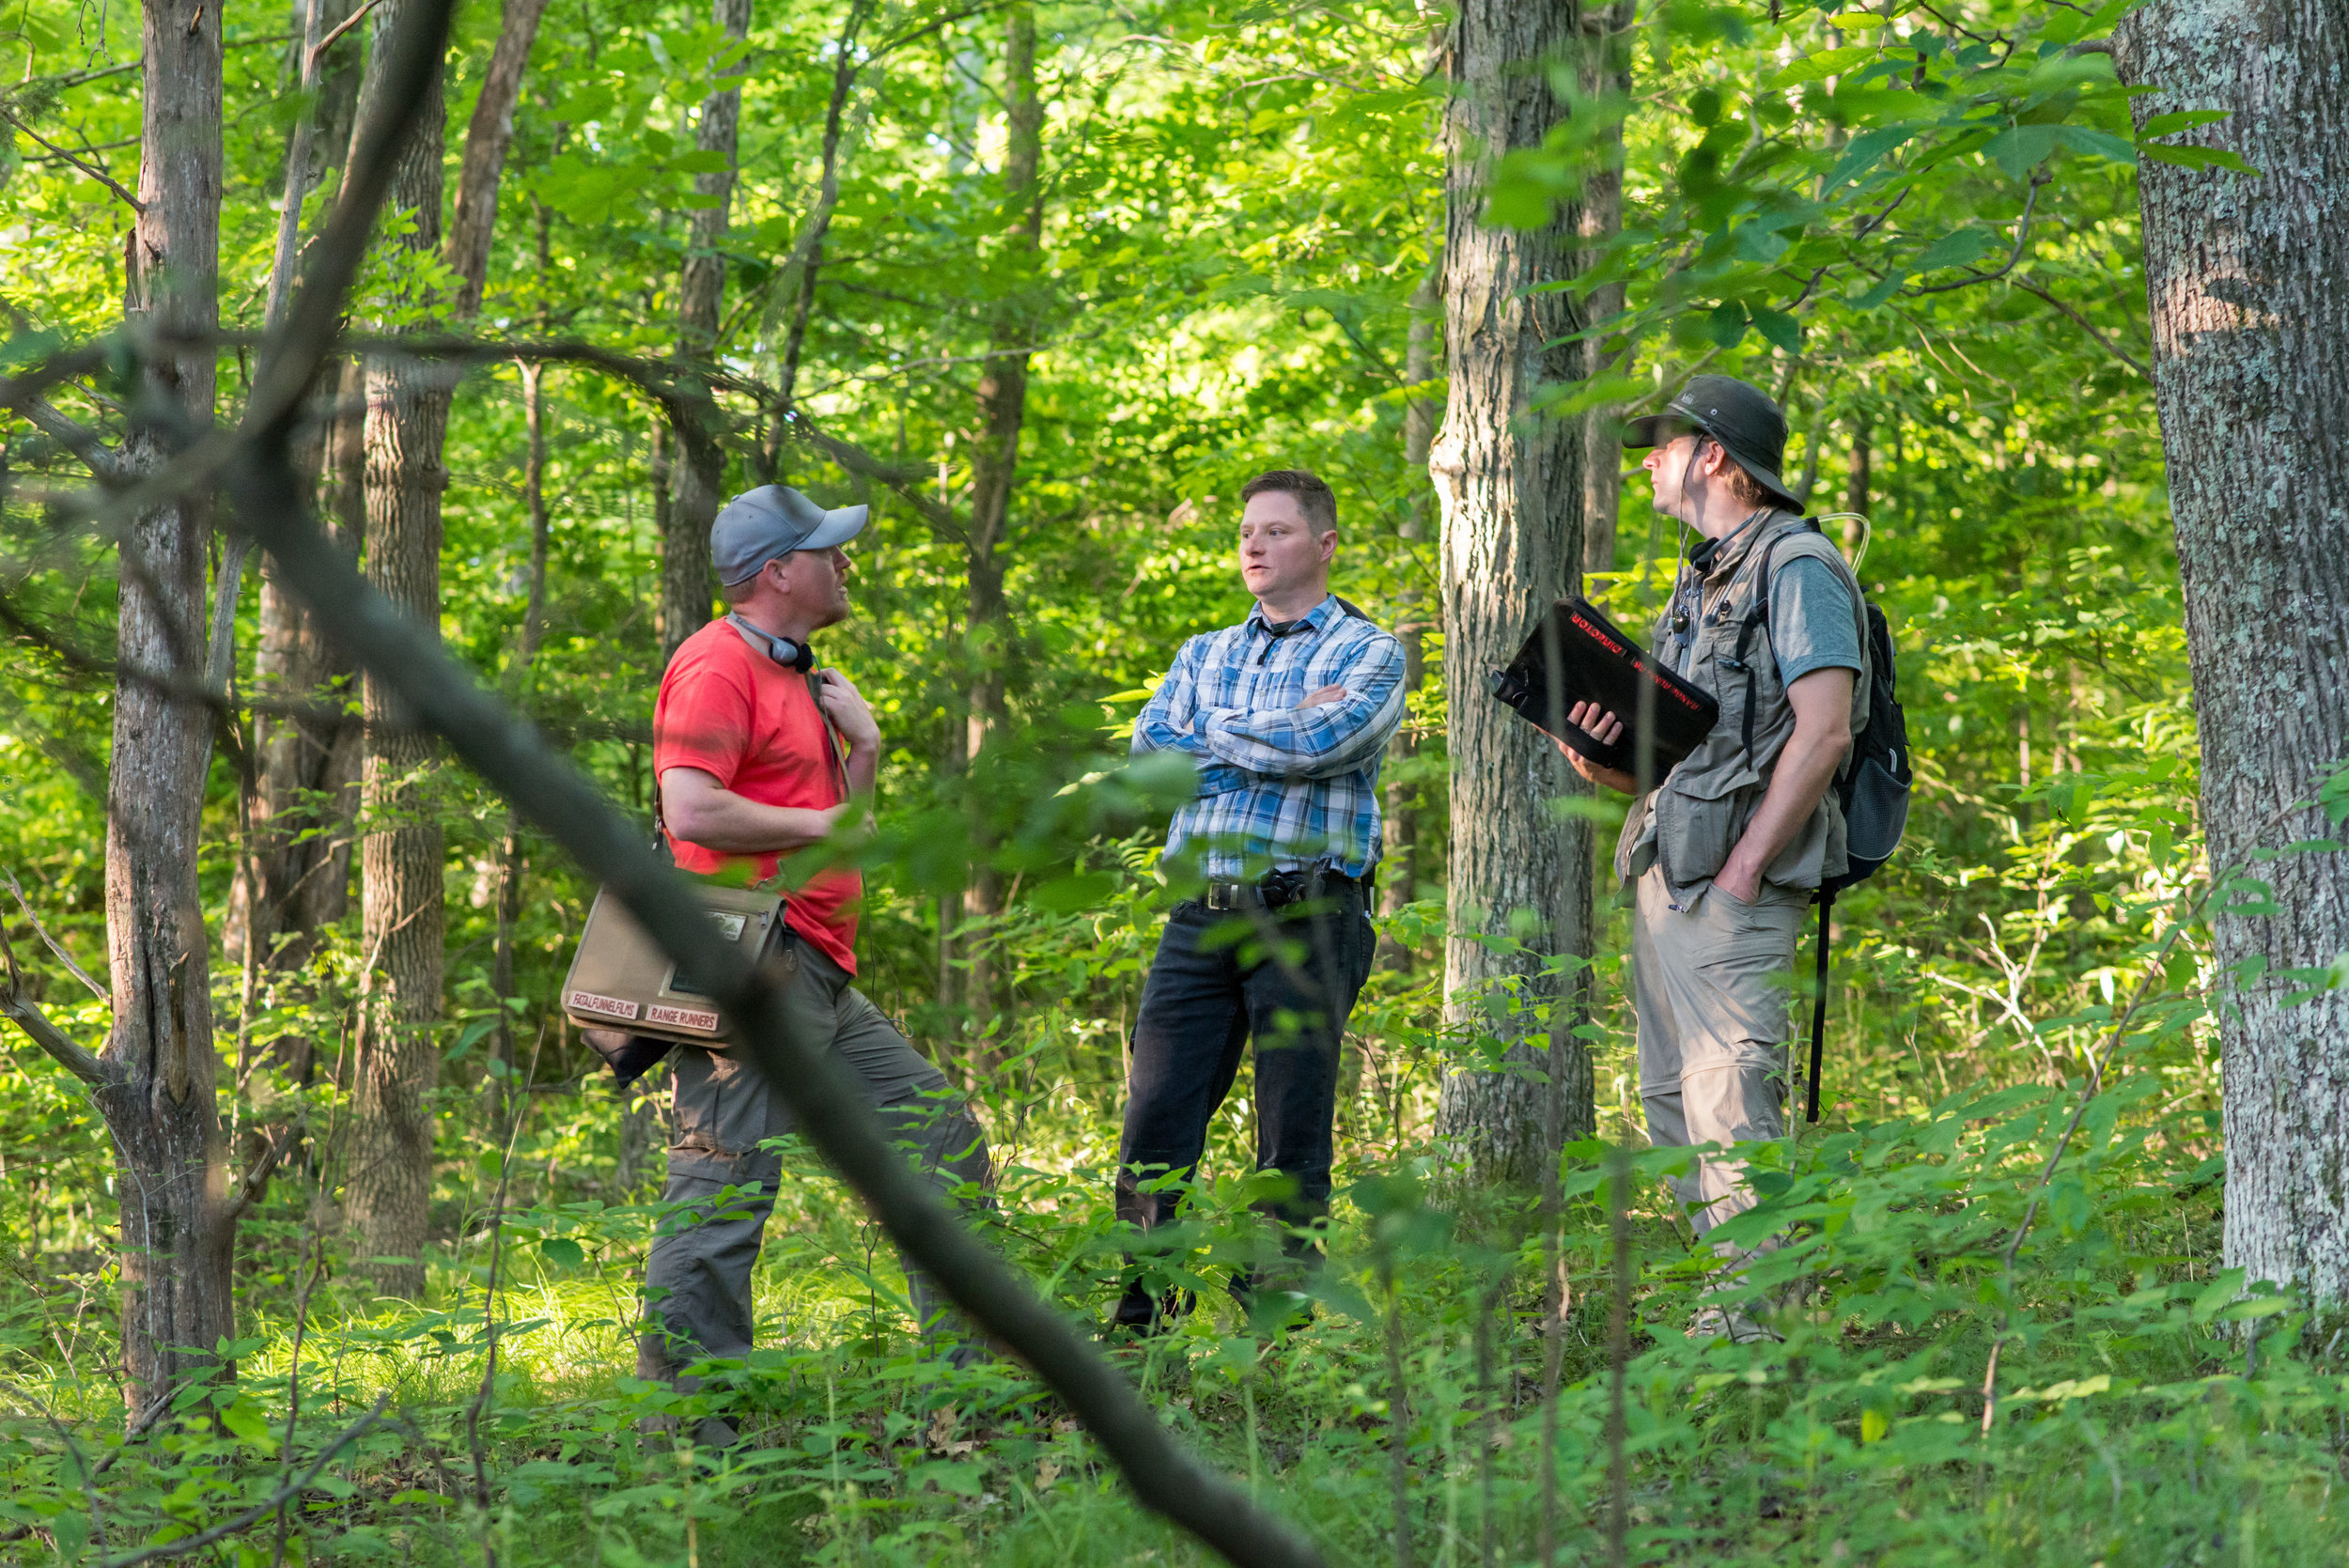 Devon Colwell, Darryl Miller, and Philip S. Plowden discuss a shot in the woods.   Photo credit,  Nathan Fortmeyer